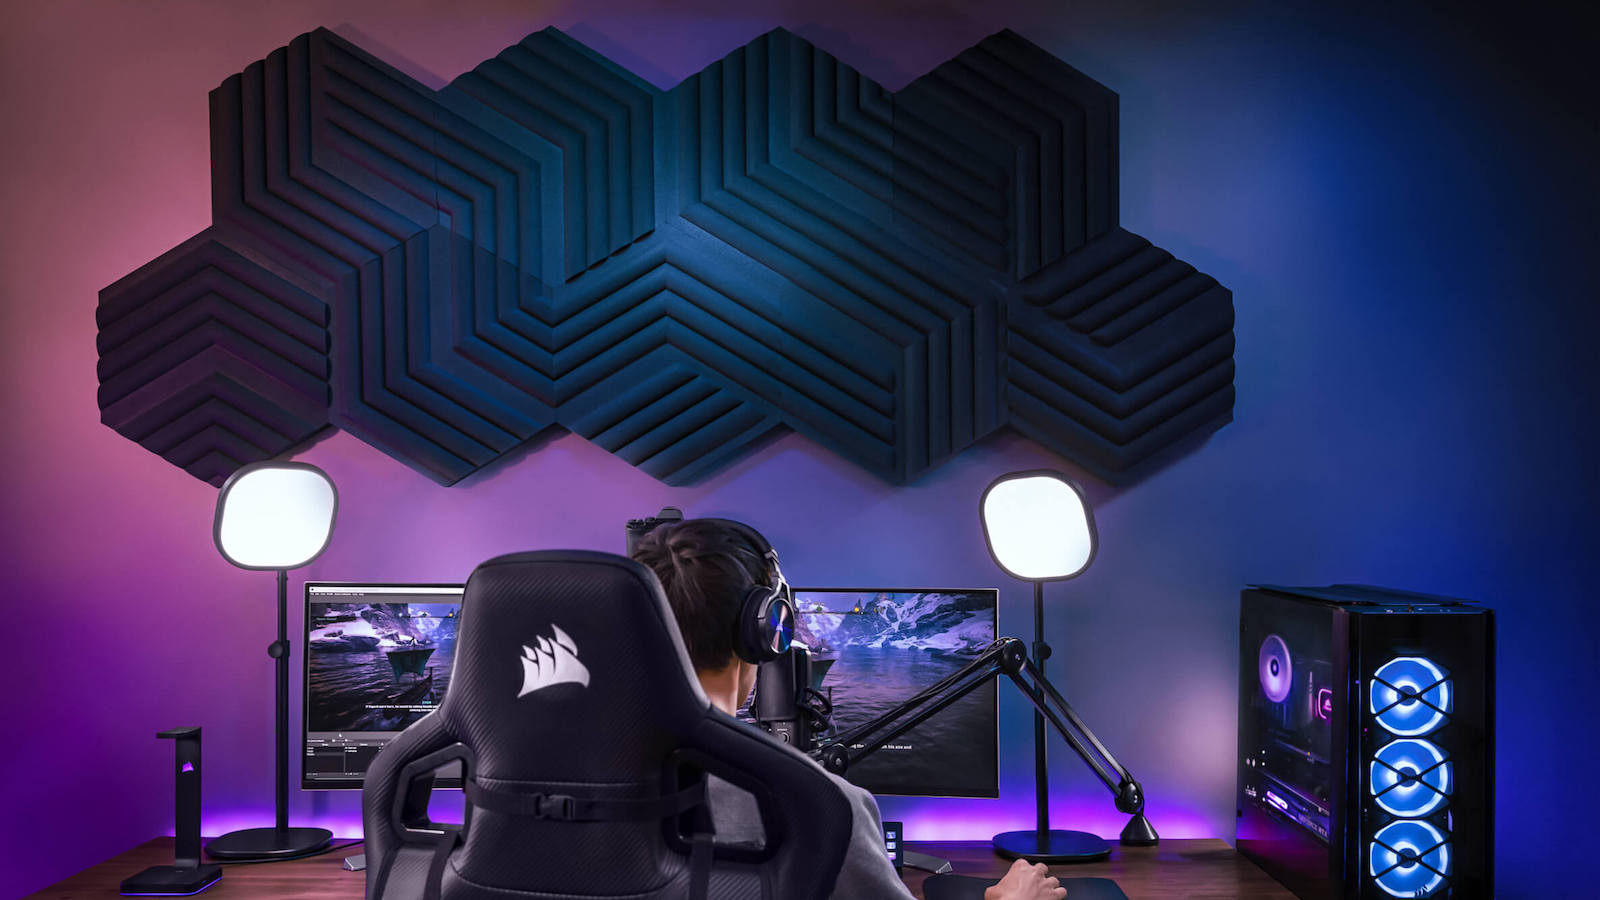 Elgato Wave Panels acoustic foam tiles provide studio-quality sound for any space